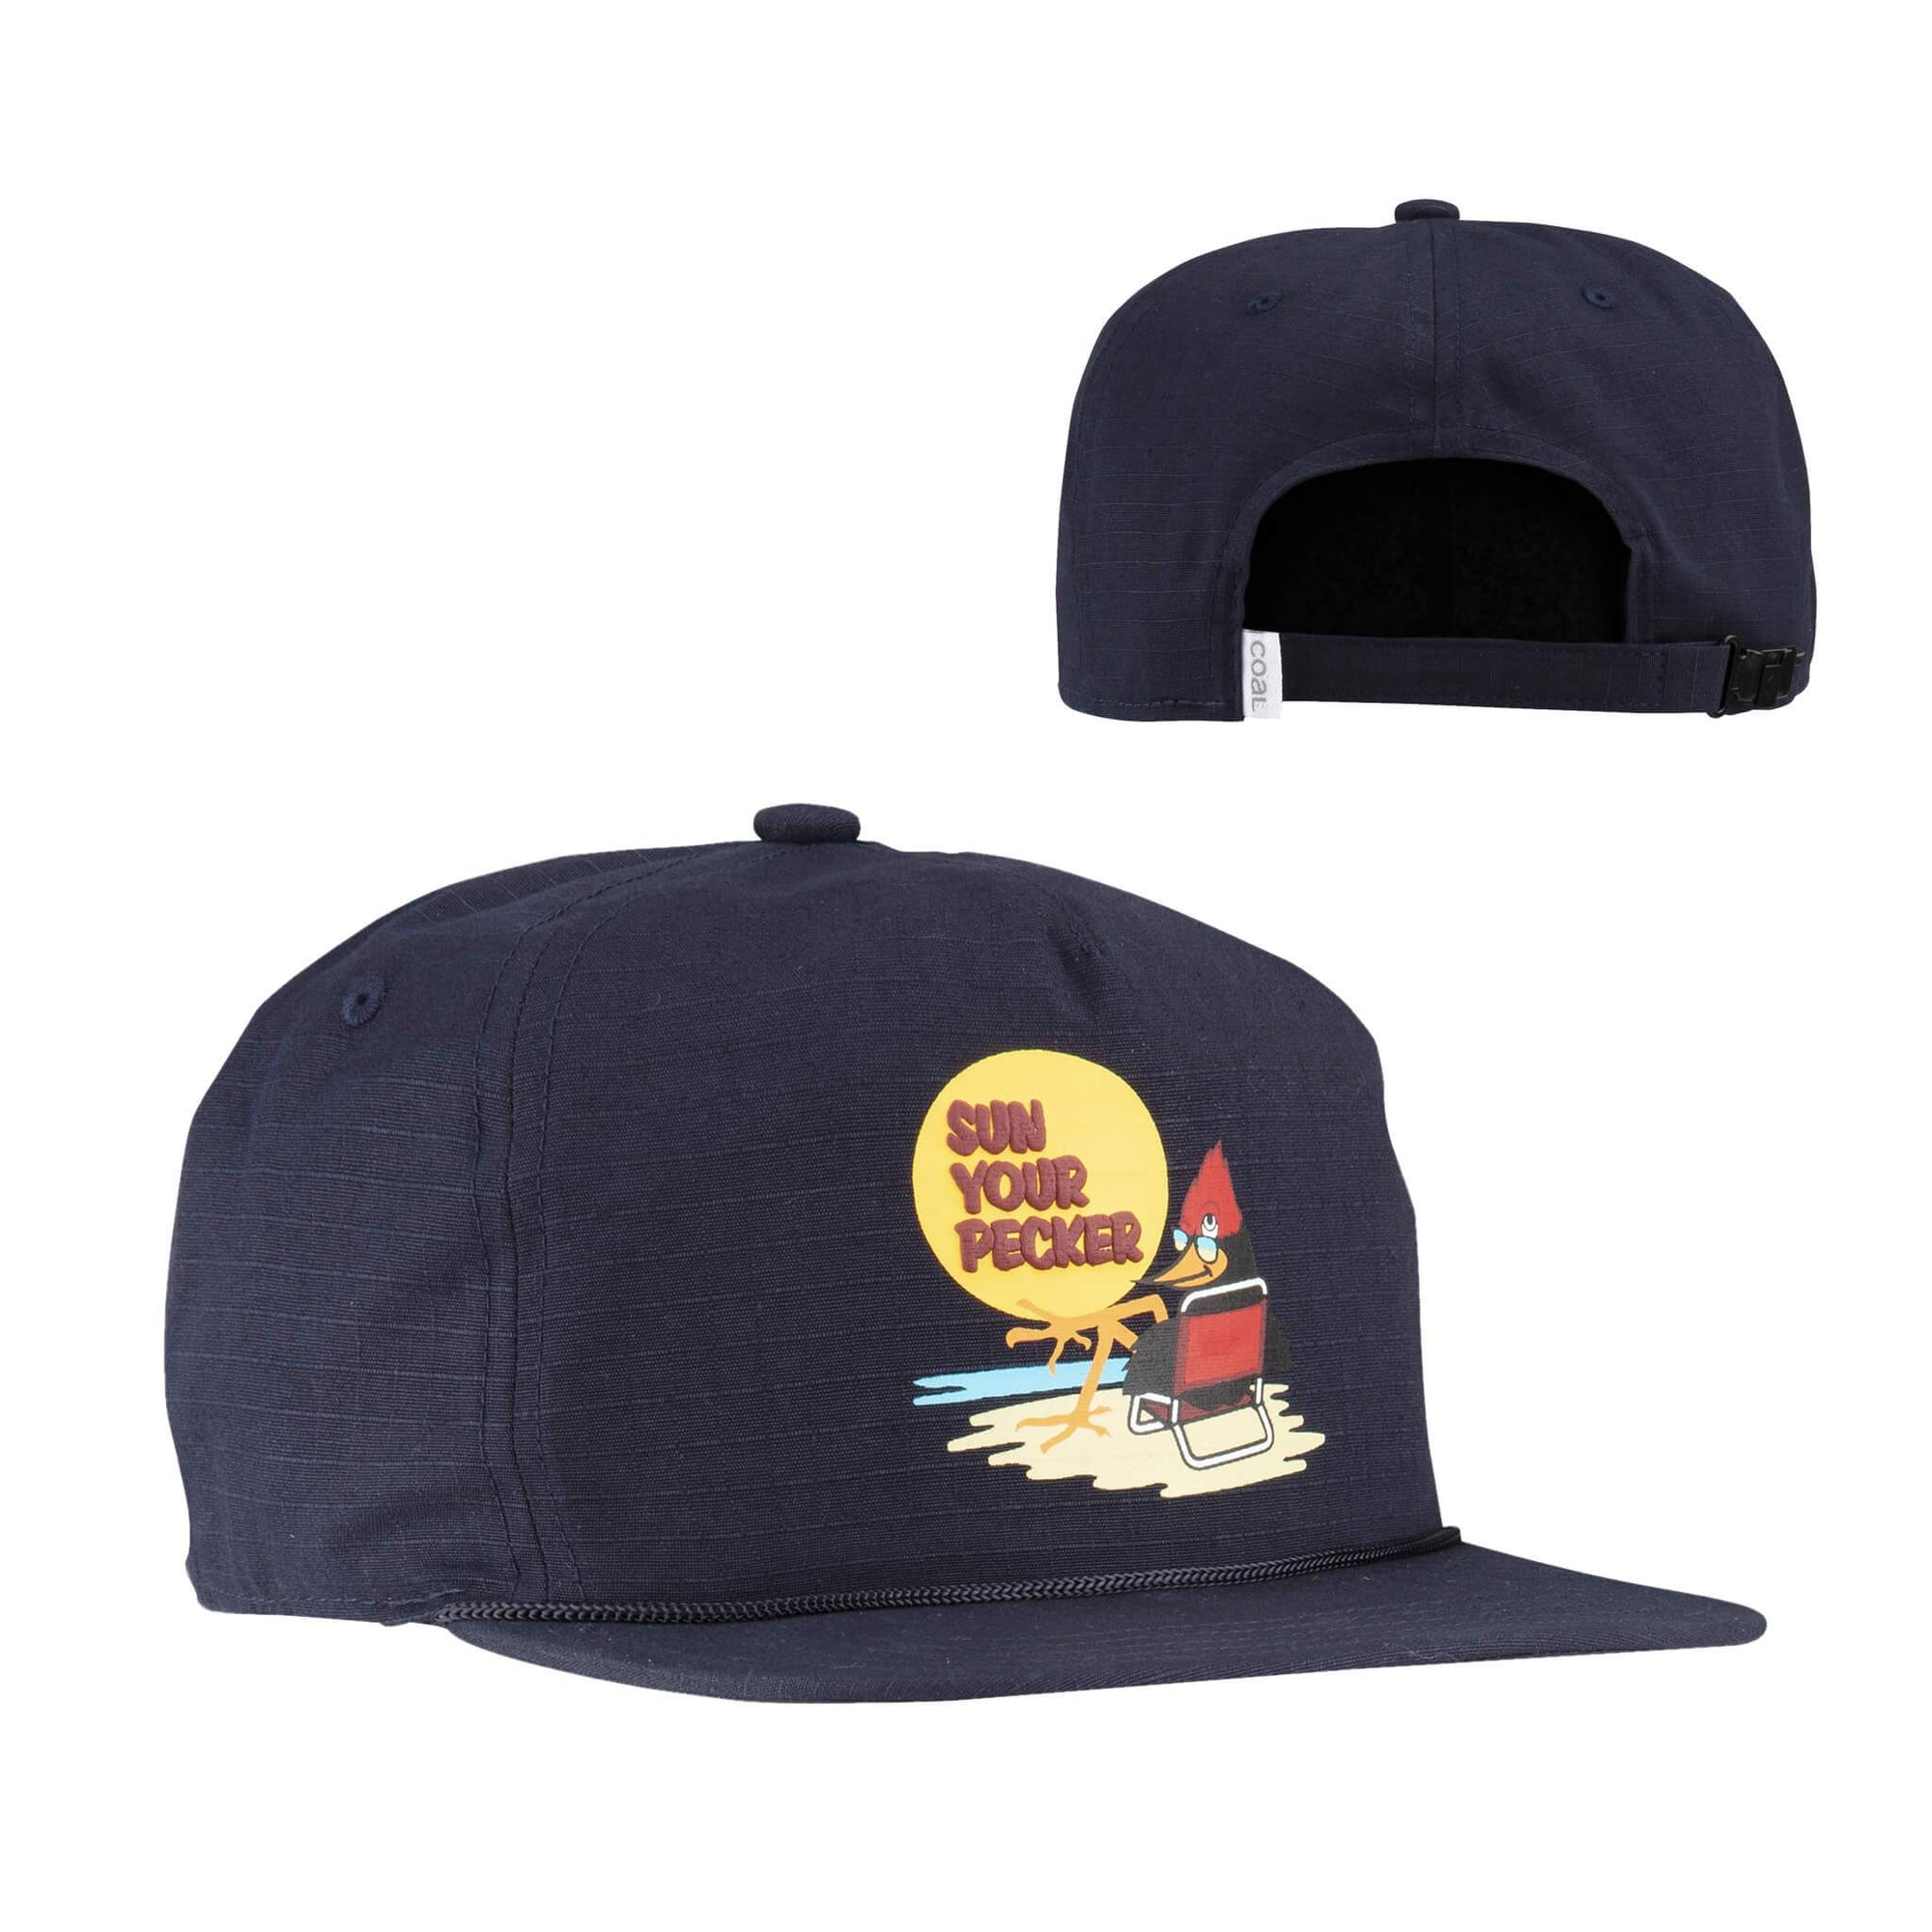 Coal Headwear The Field Mid Crown Hat - Navy